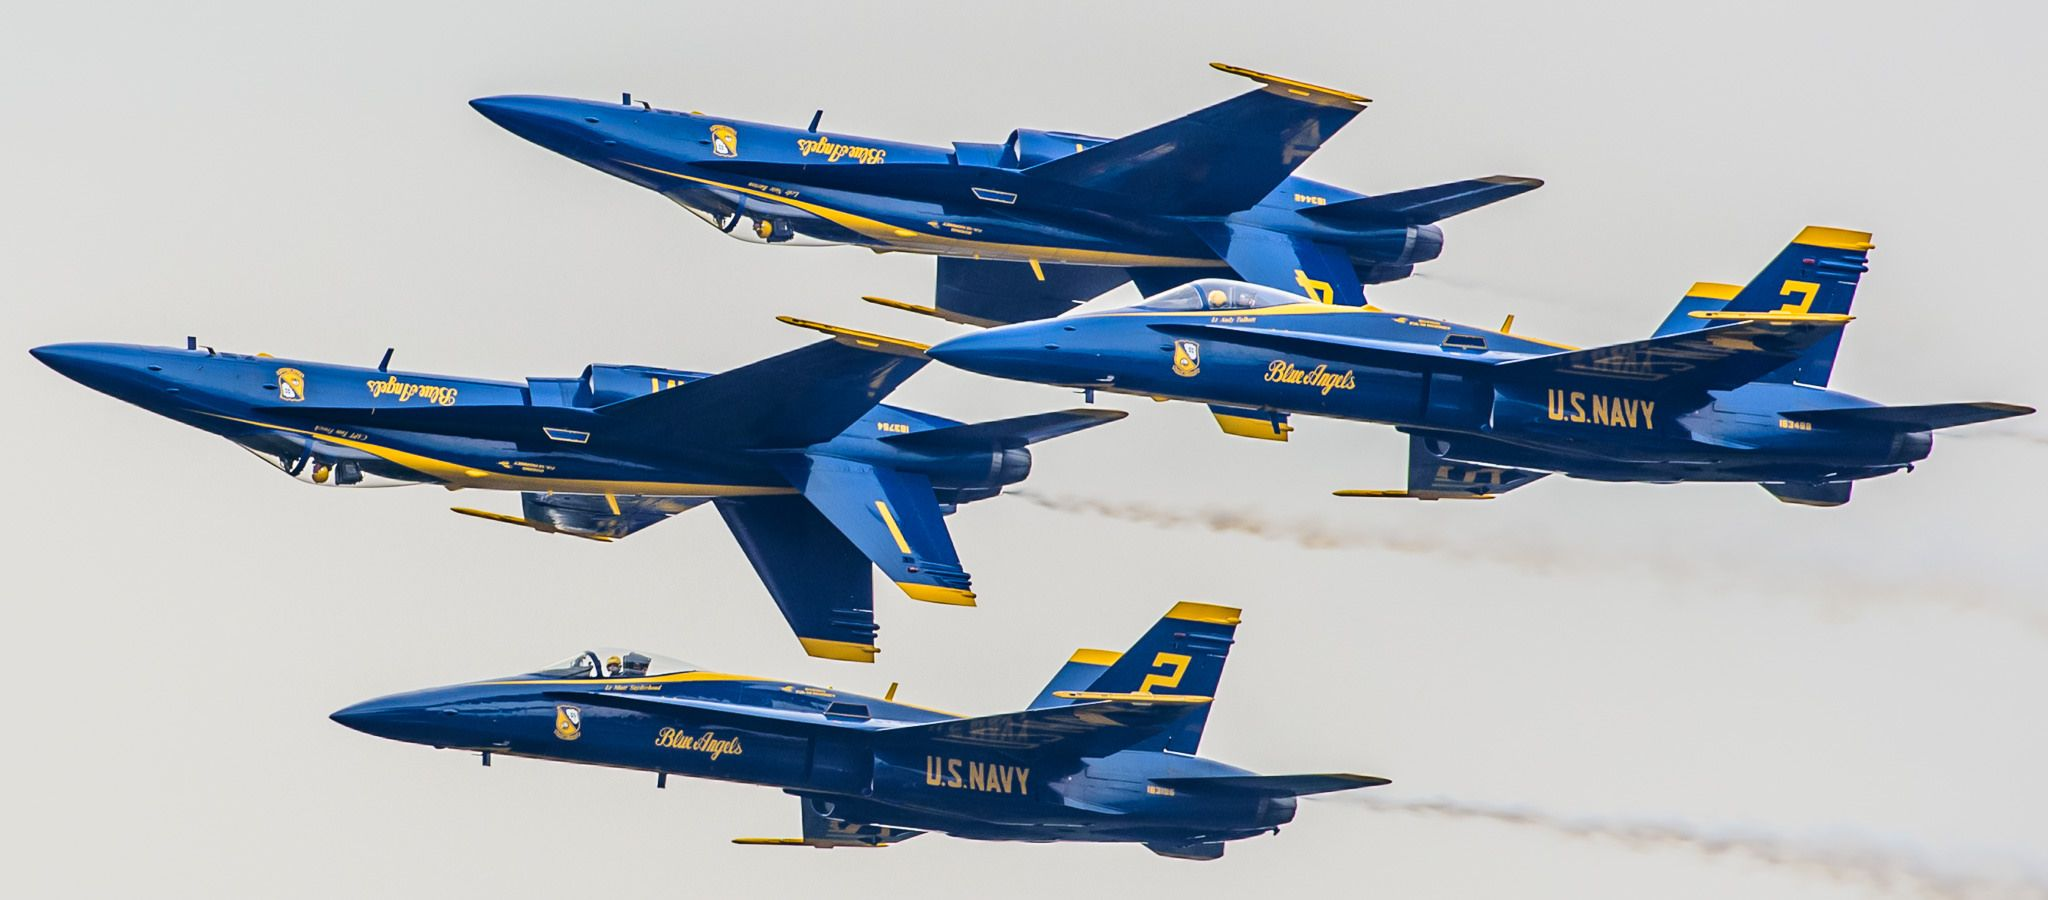 https://flic.kr/p/AyxKzA   F/A-18 Hornet Blue Angels No. 2 is looking at me!   Blue Angels Airshow 2015 Georgia